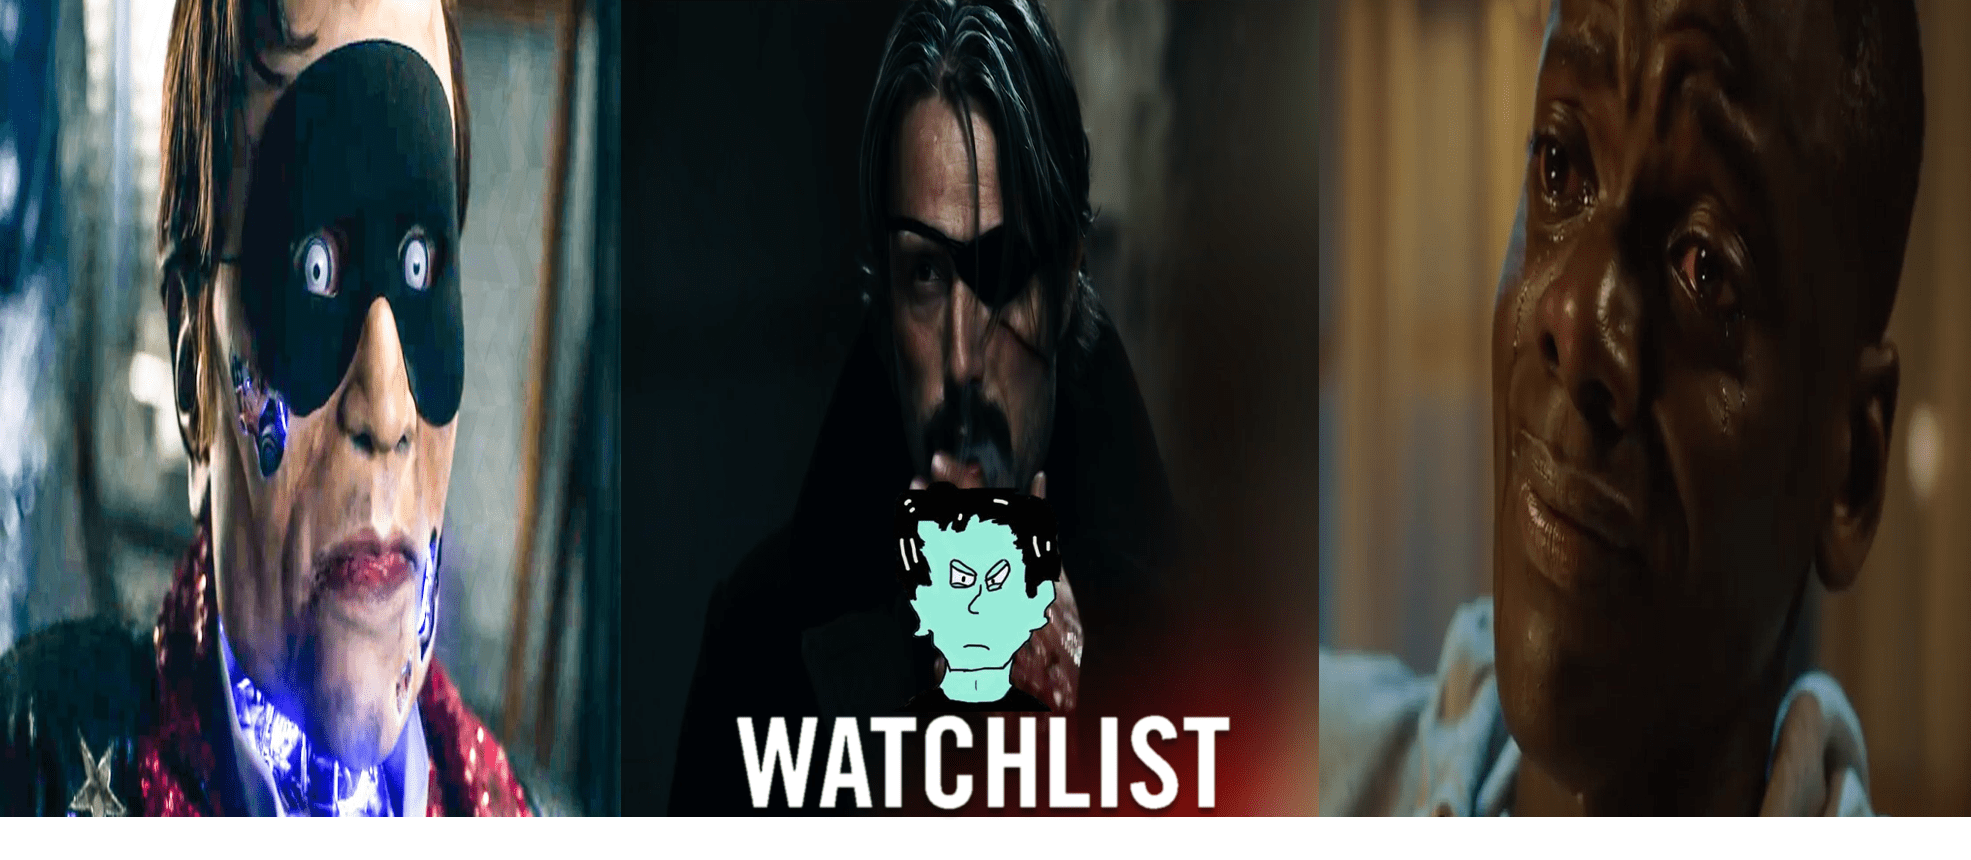 The Watchlist: Episode 2 -The Horror